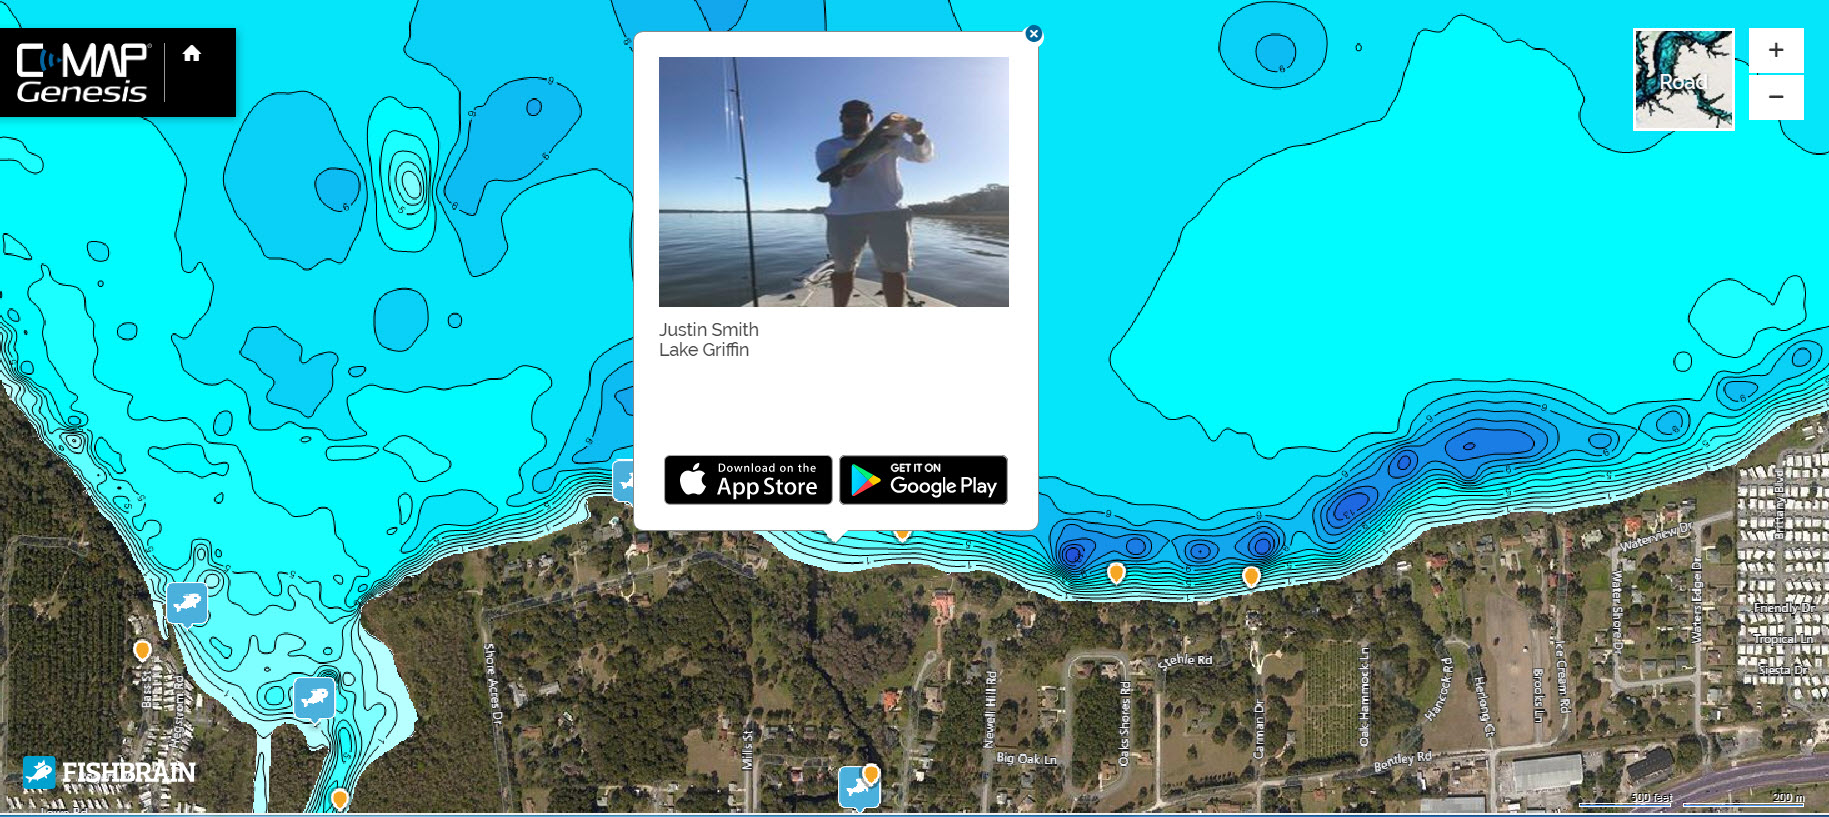 C-MAP and Fishbrain partner to integrate maps and app – C-MAP Fishing